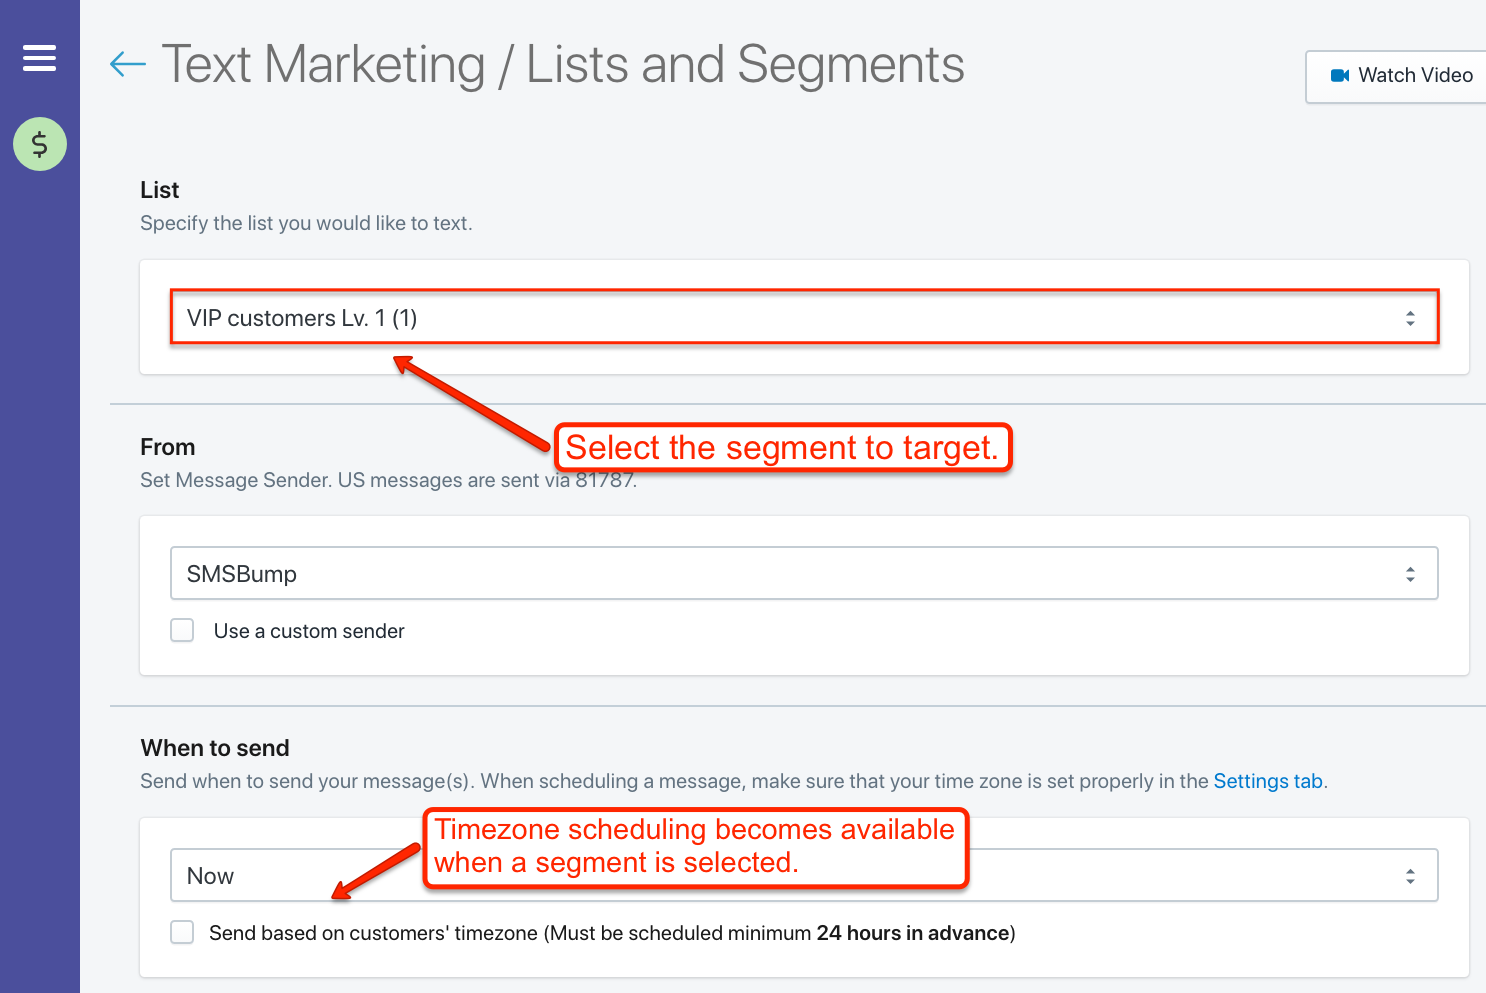 Enable timezone scheduling for segment-based marketing campaigns.